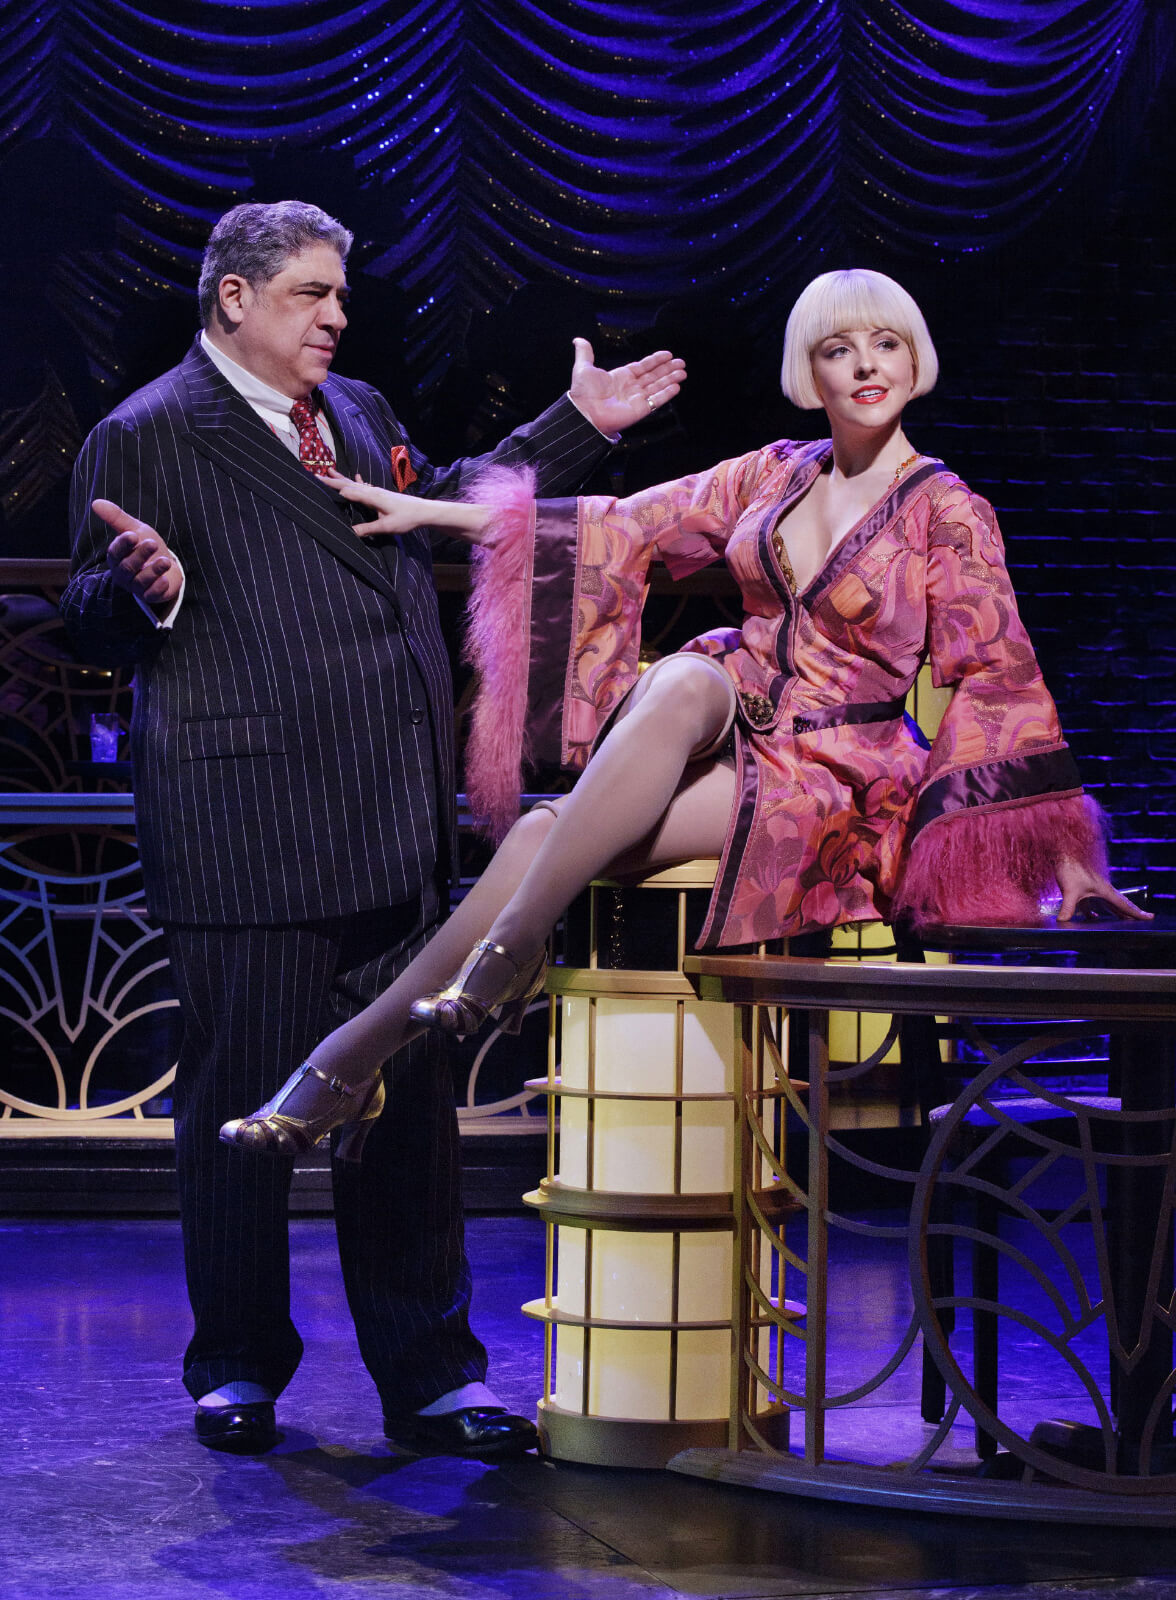 """Nick (Vincent Pastore) and Olive (Heléne Yorke) performing """"Gee, Baby Ain't IGood to You""""."""